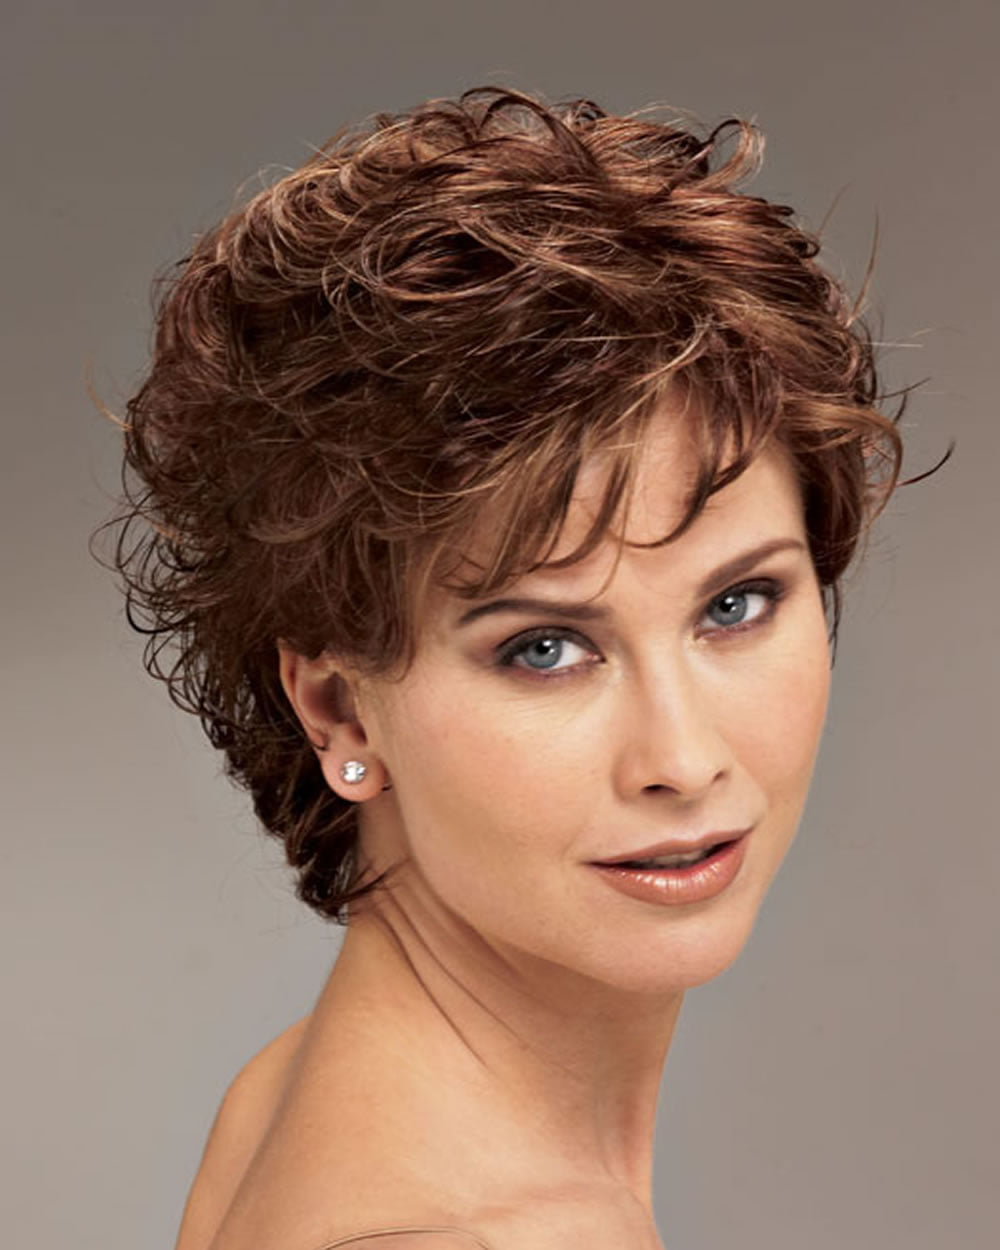 haircuts for curley hair 22 popular hairstyles for curly hair pixie bob 4534